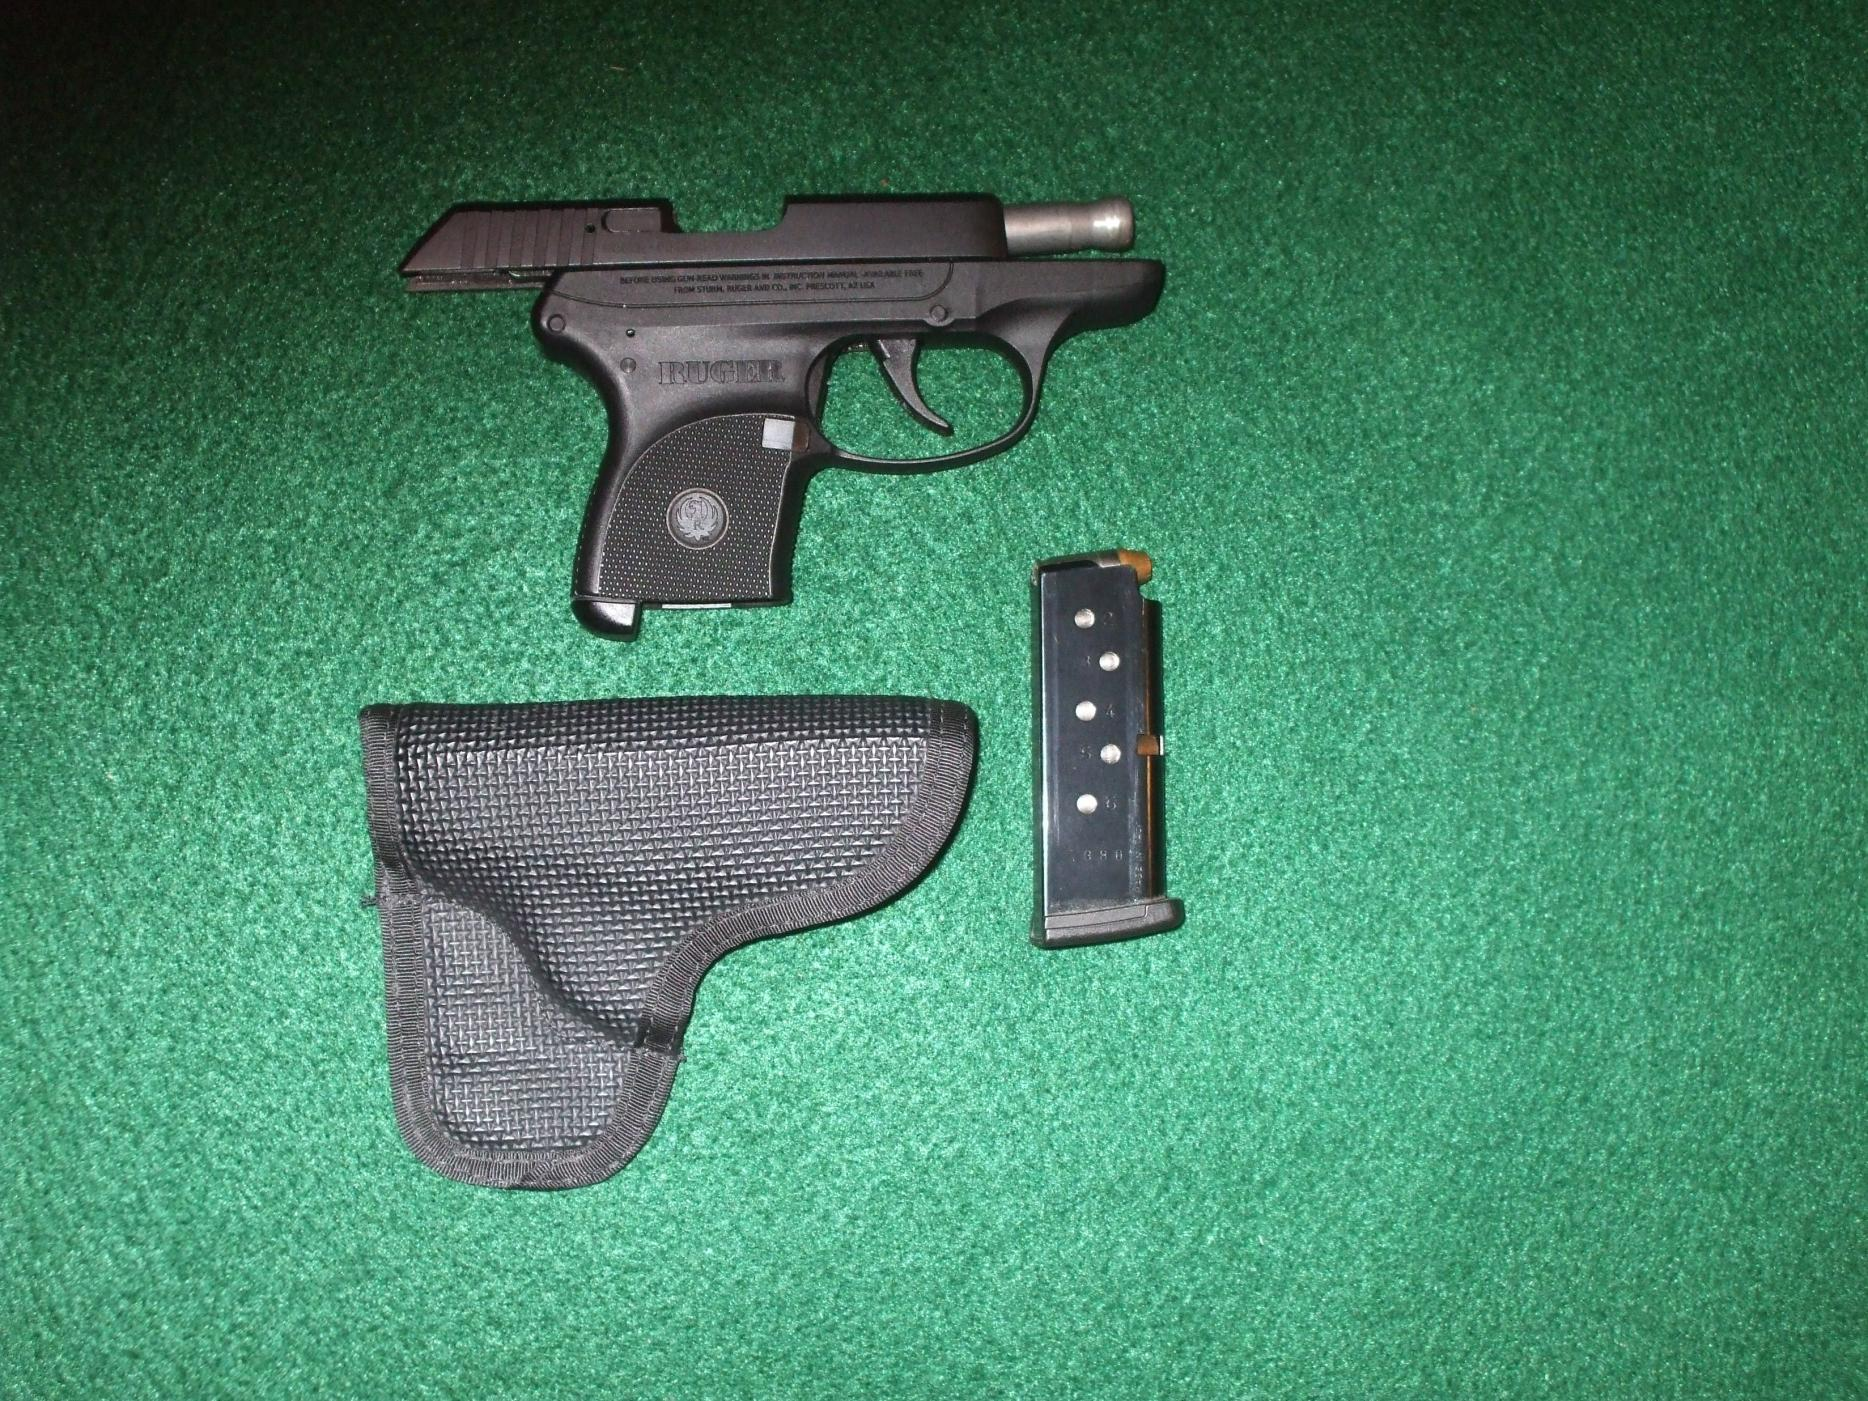 Ruger LCP/Kahr pm9-081.jpg